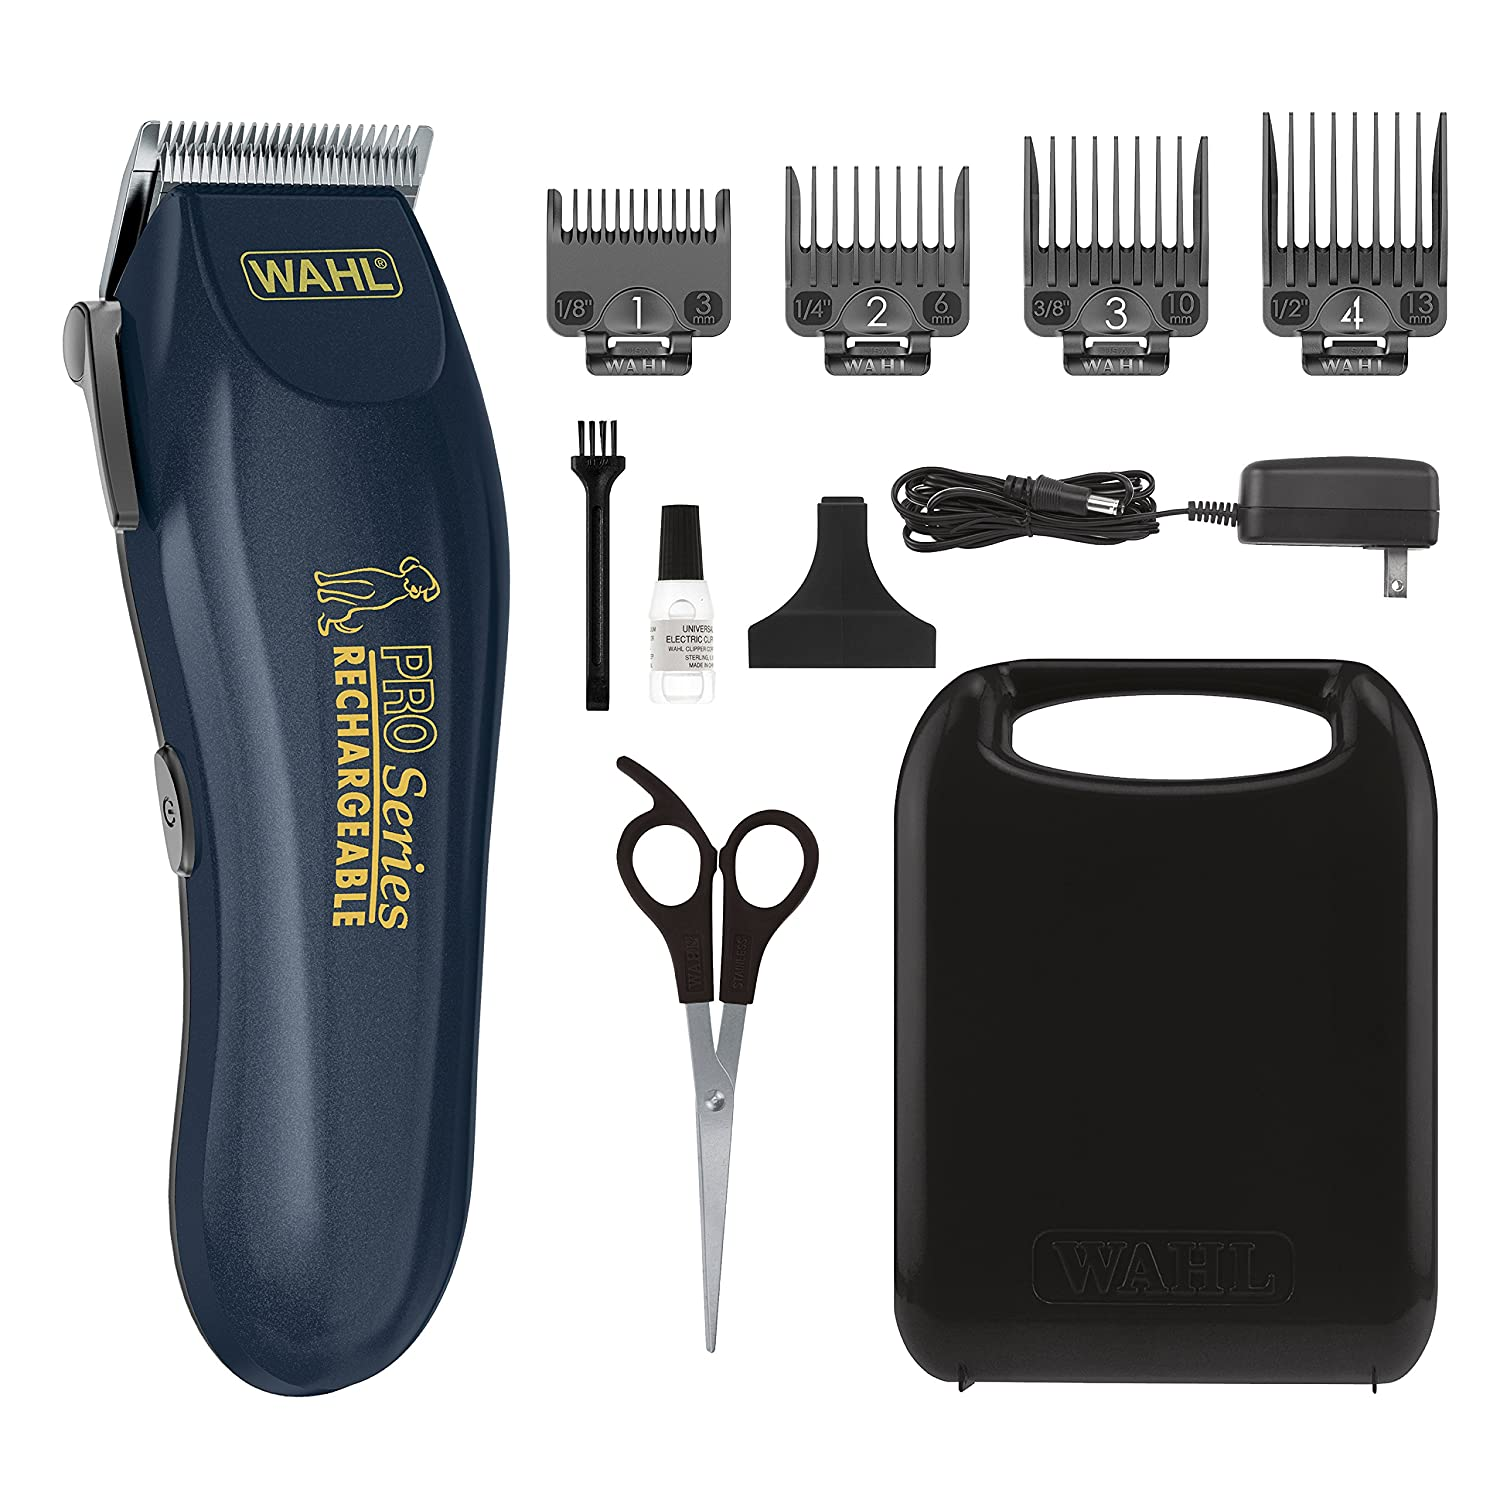 bluee Wahl 09591-2100 Lithium Ion Rechargeable Deluxe Pro Series Pet Clipper Kit Cordless Rechargeable Clippers, Pet Grooming Kit